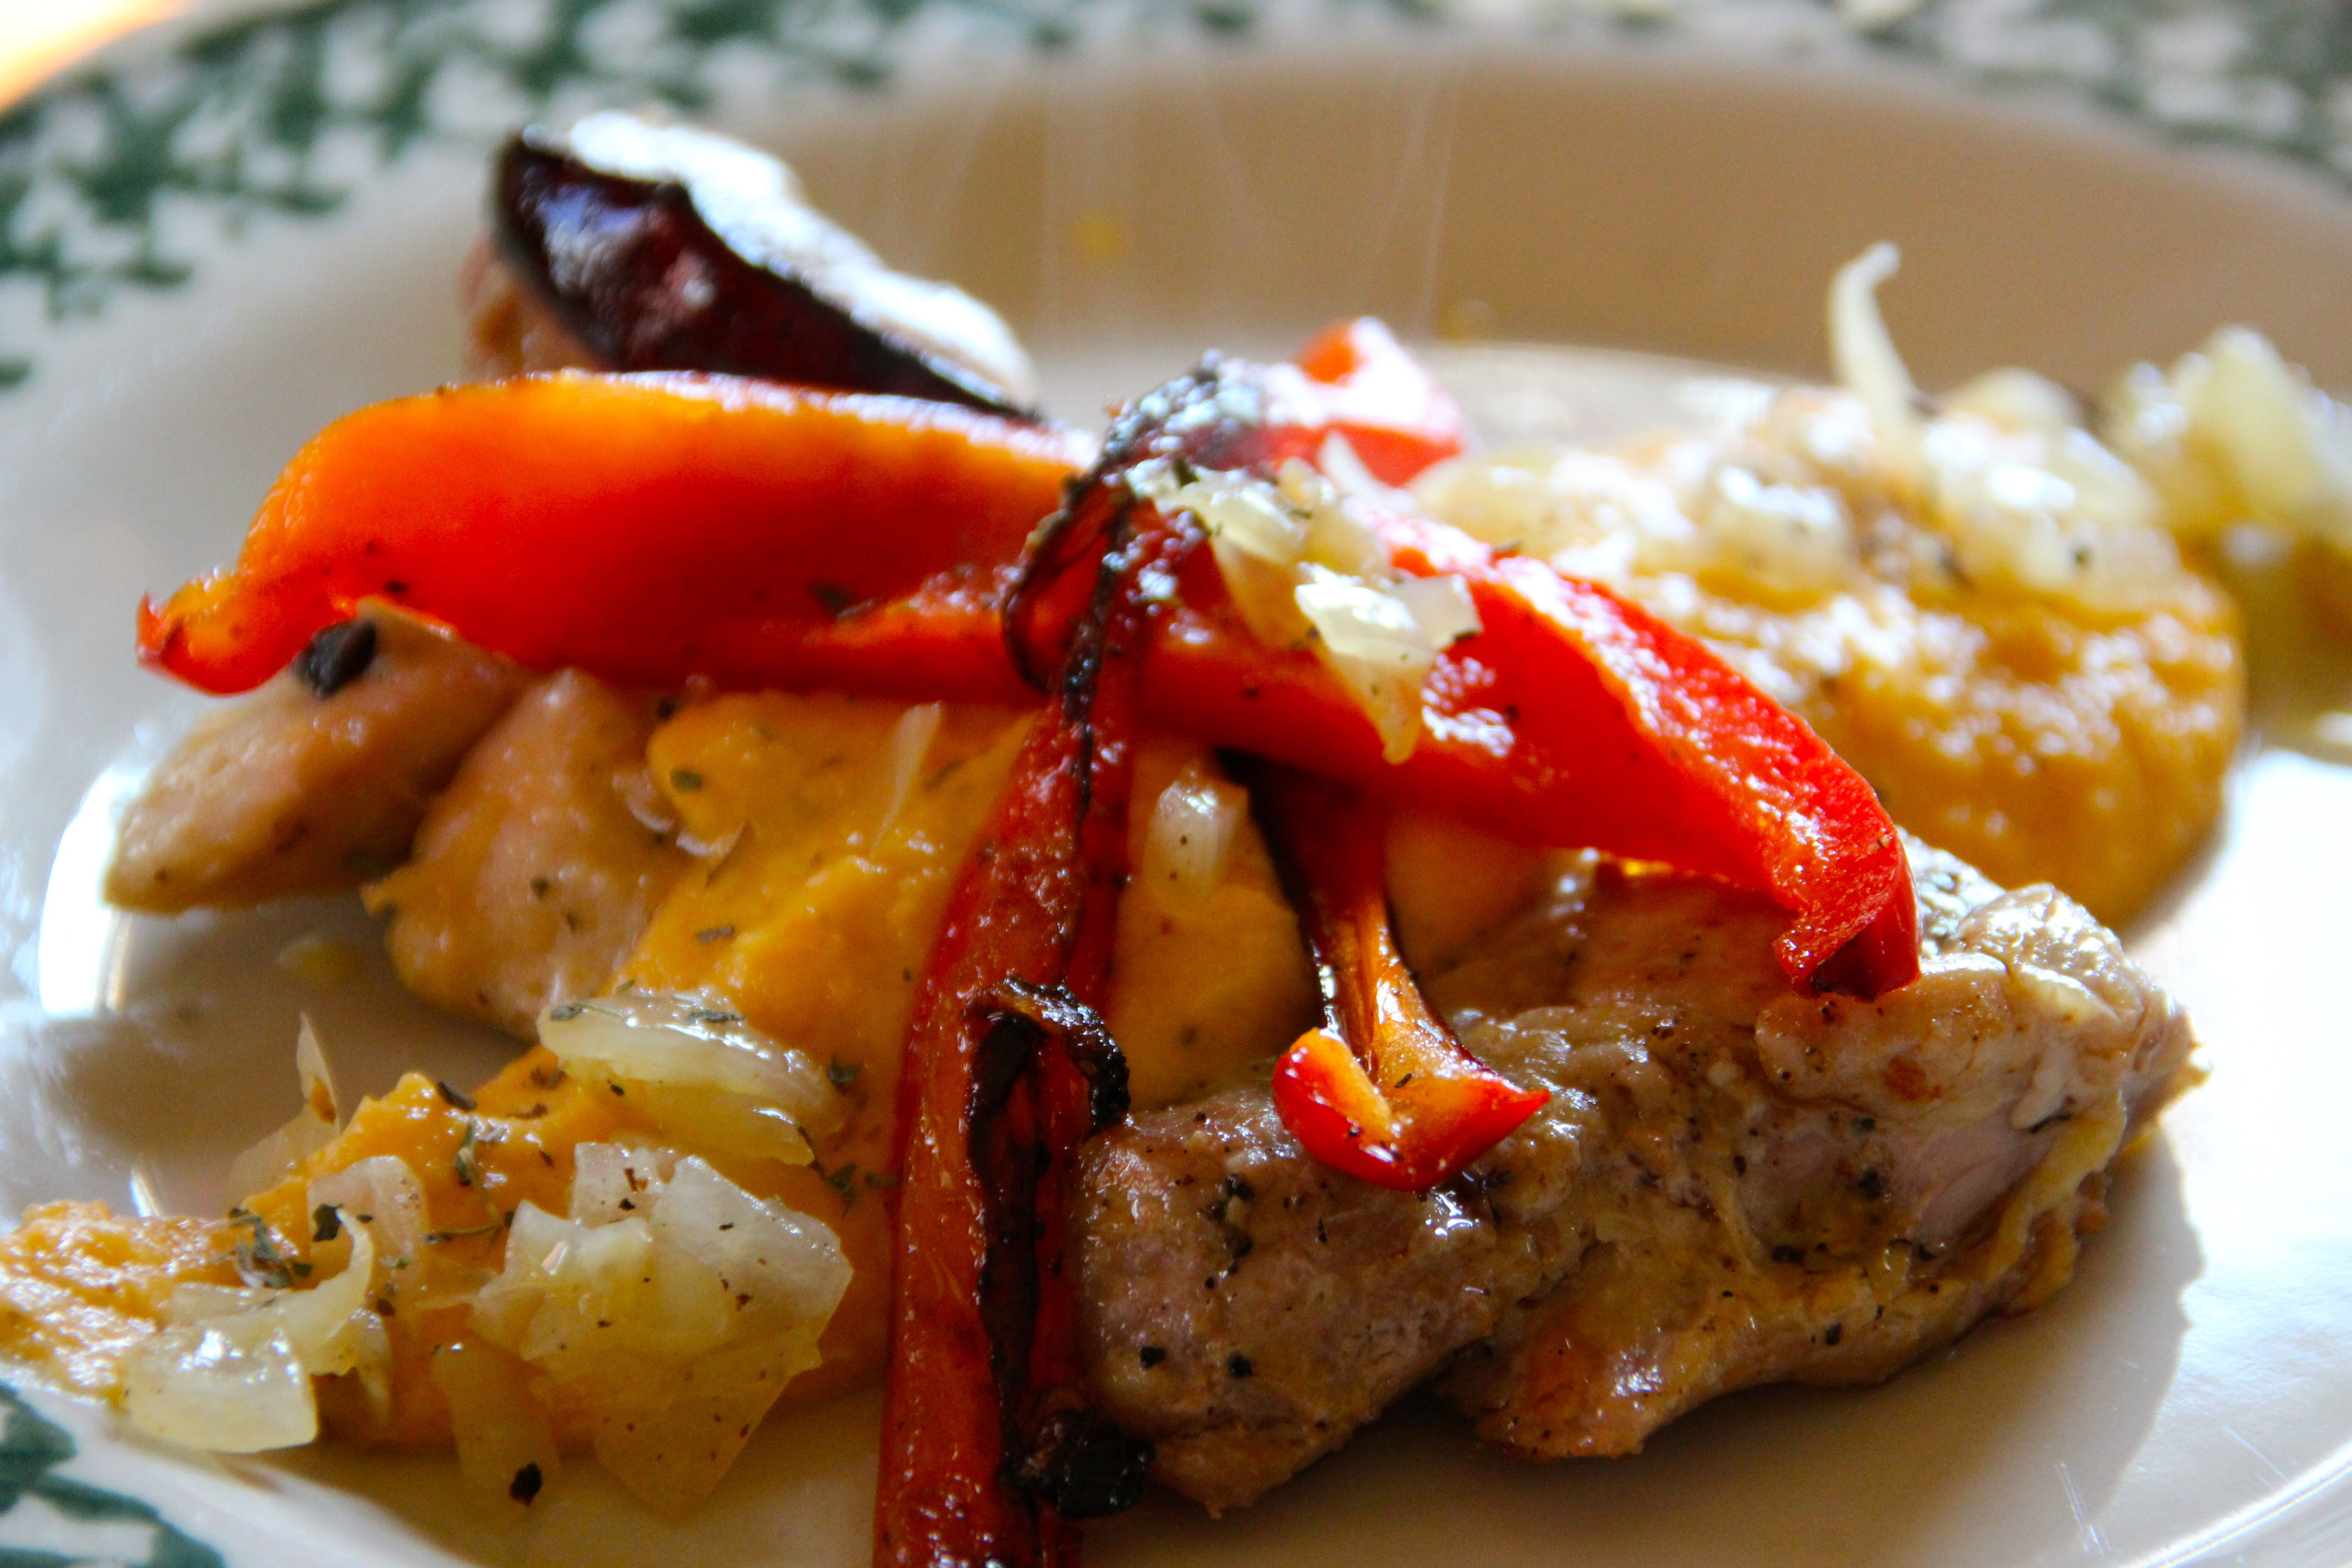 Pin by Judith Baer on Food: Roasted Red Pepper Recipes | Pinterest